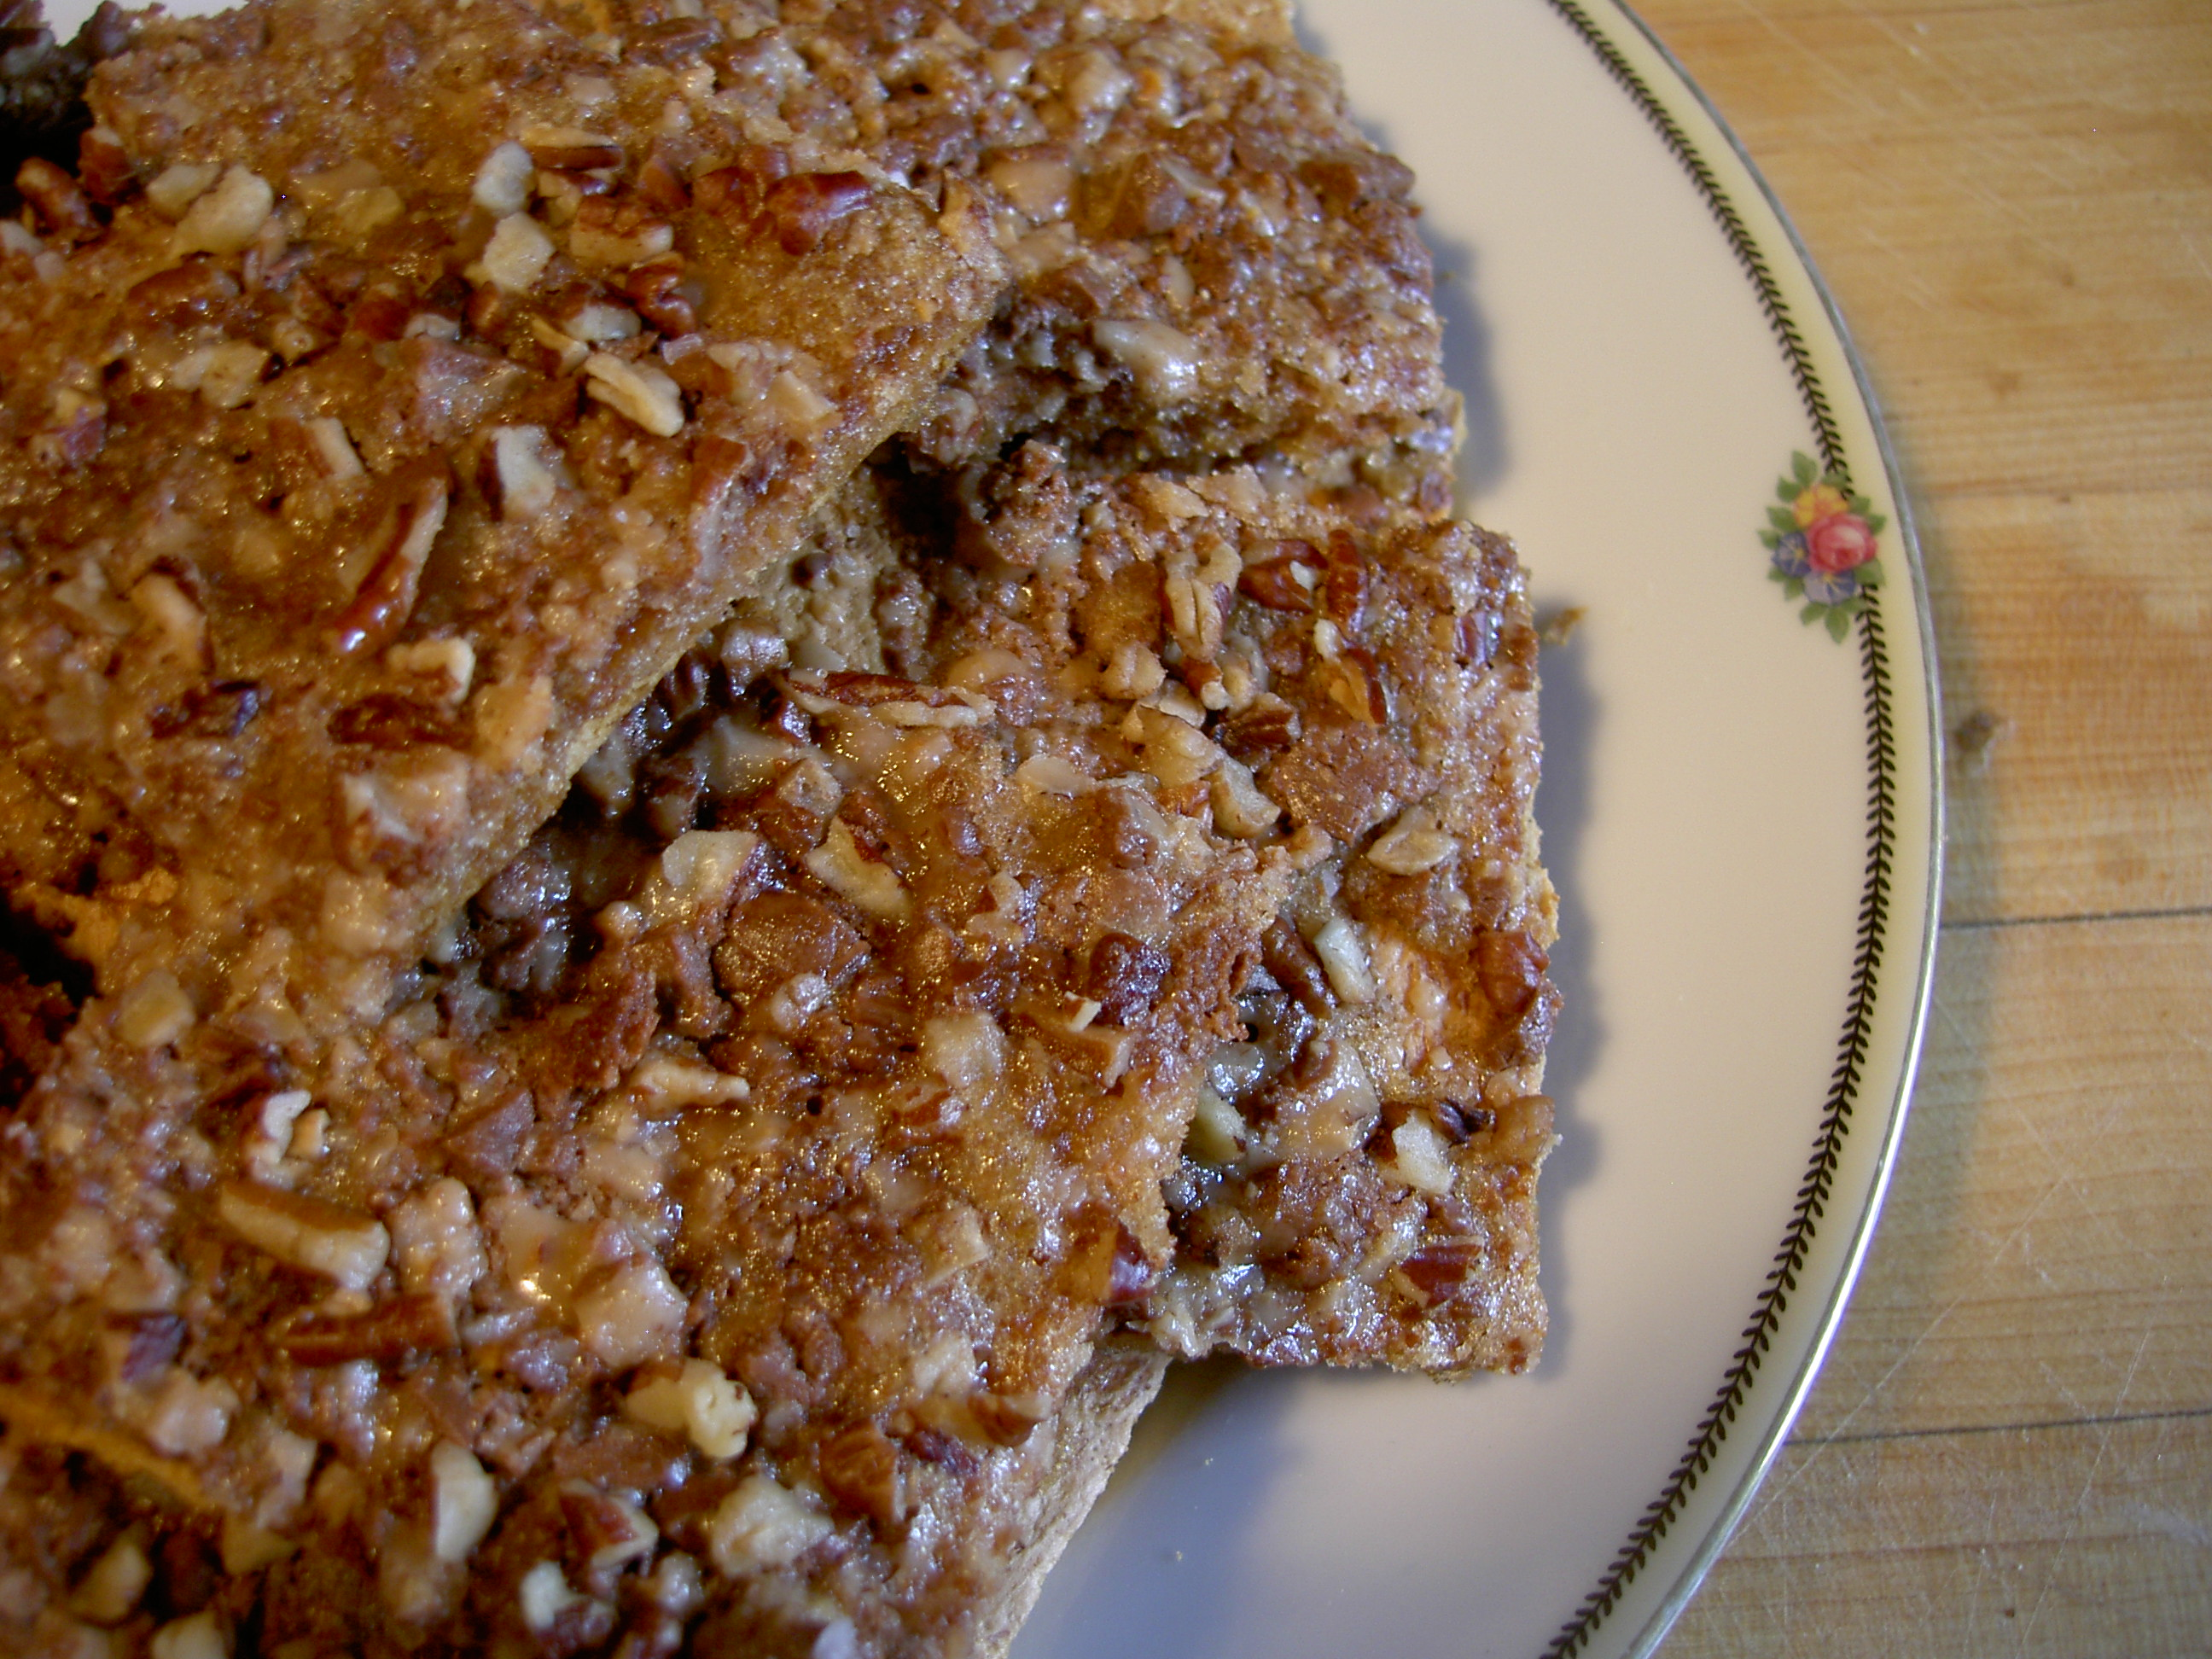 Crunchy graham toffee bars